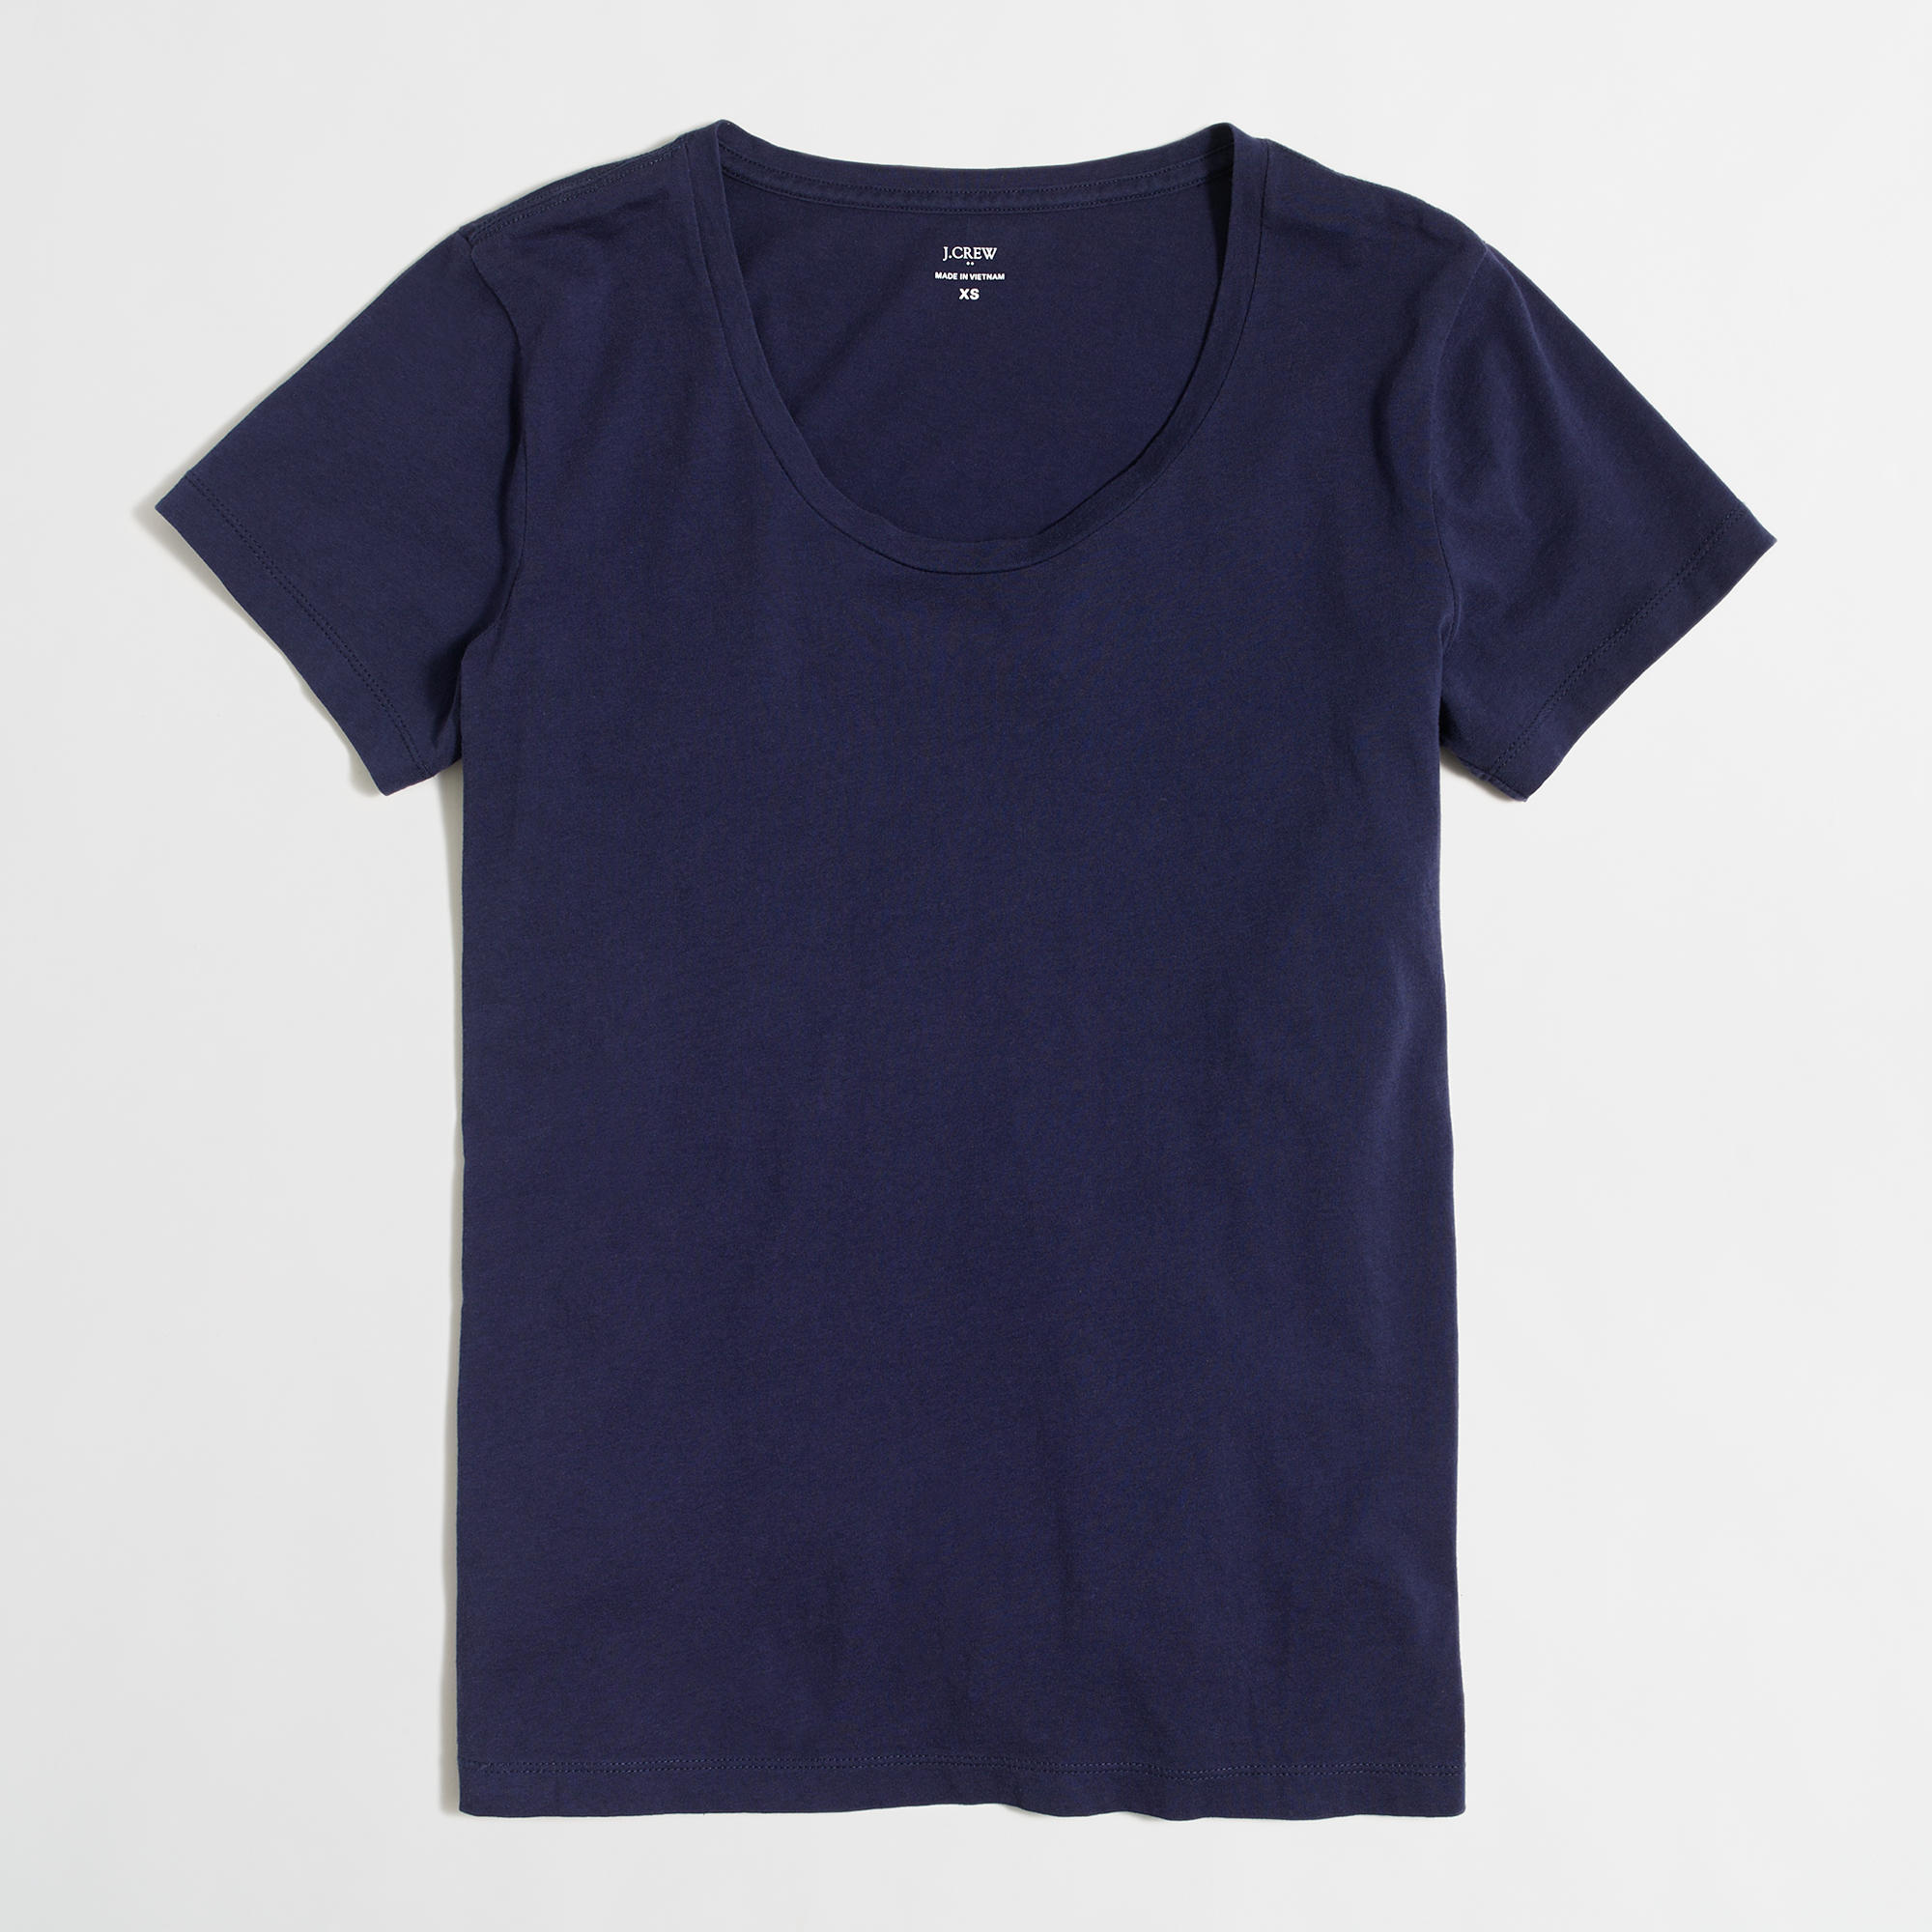 Comfy slub cotton tees